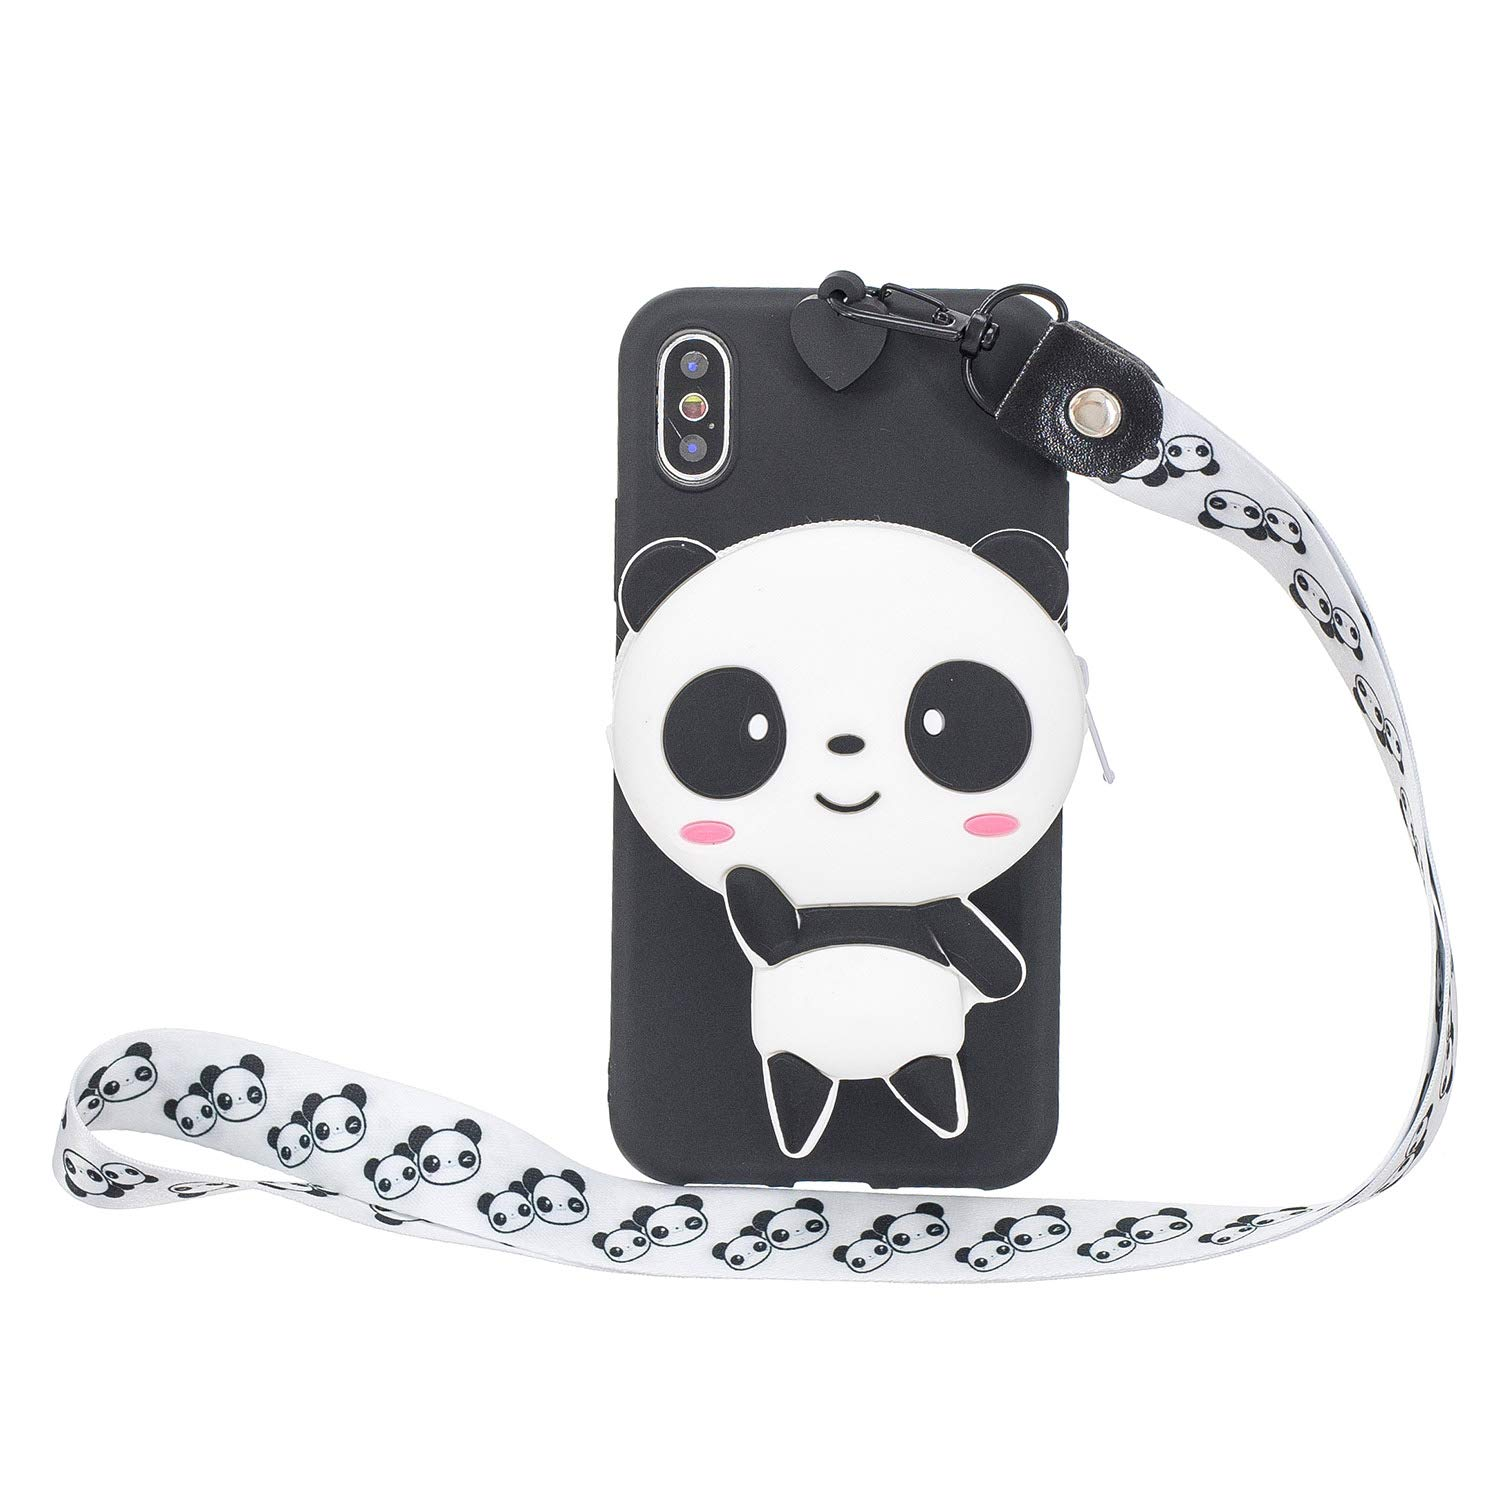 DAMONDY iPhone Xs Cover Case,iPhone X Case,3D Cartoon Cute Pocket Purse Zipper Wallet Stand Holder Cover Soft Silicone Protective Case with Lanyard Strap for iPhone Xs-Black Panda by DAMONDY